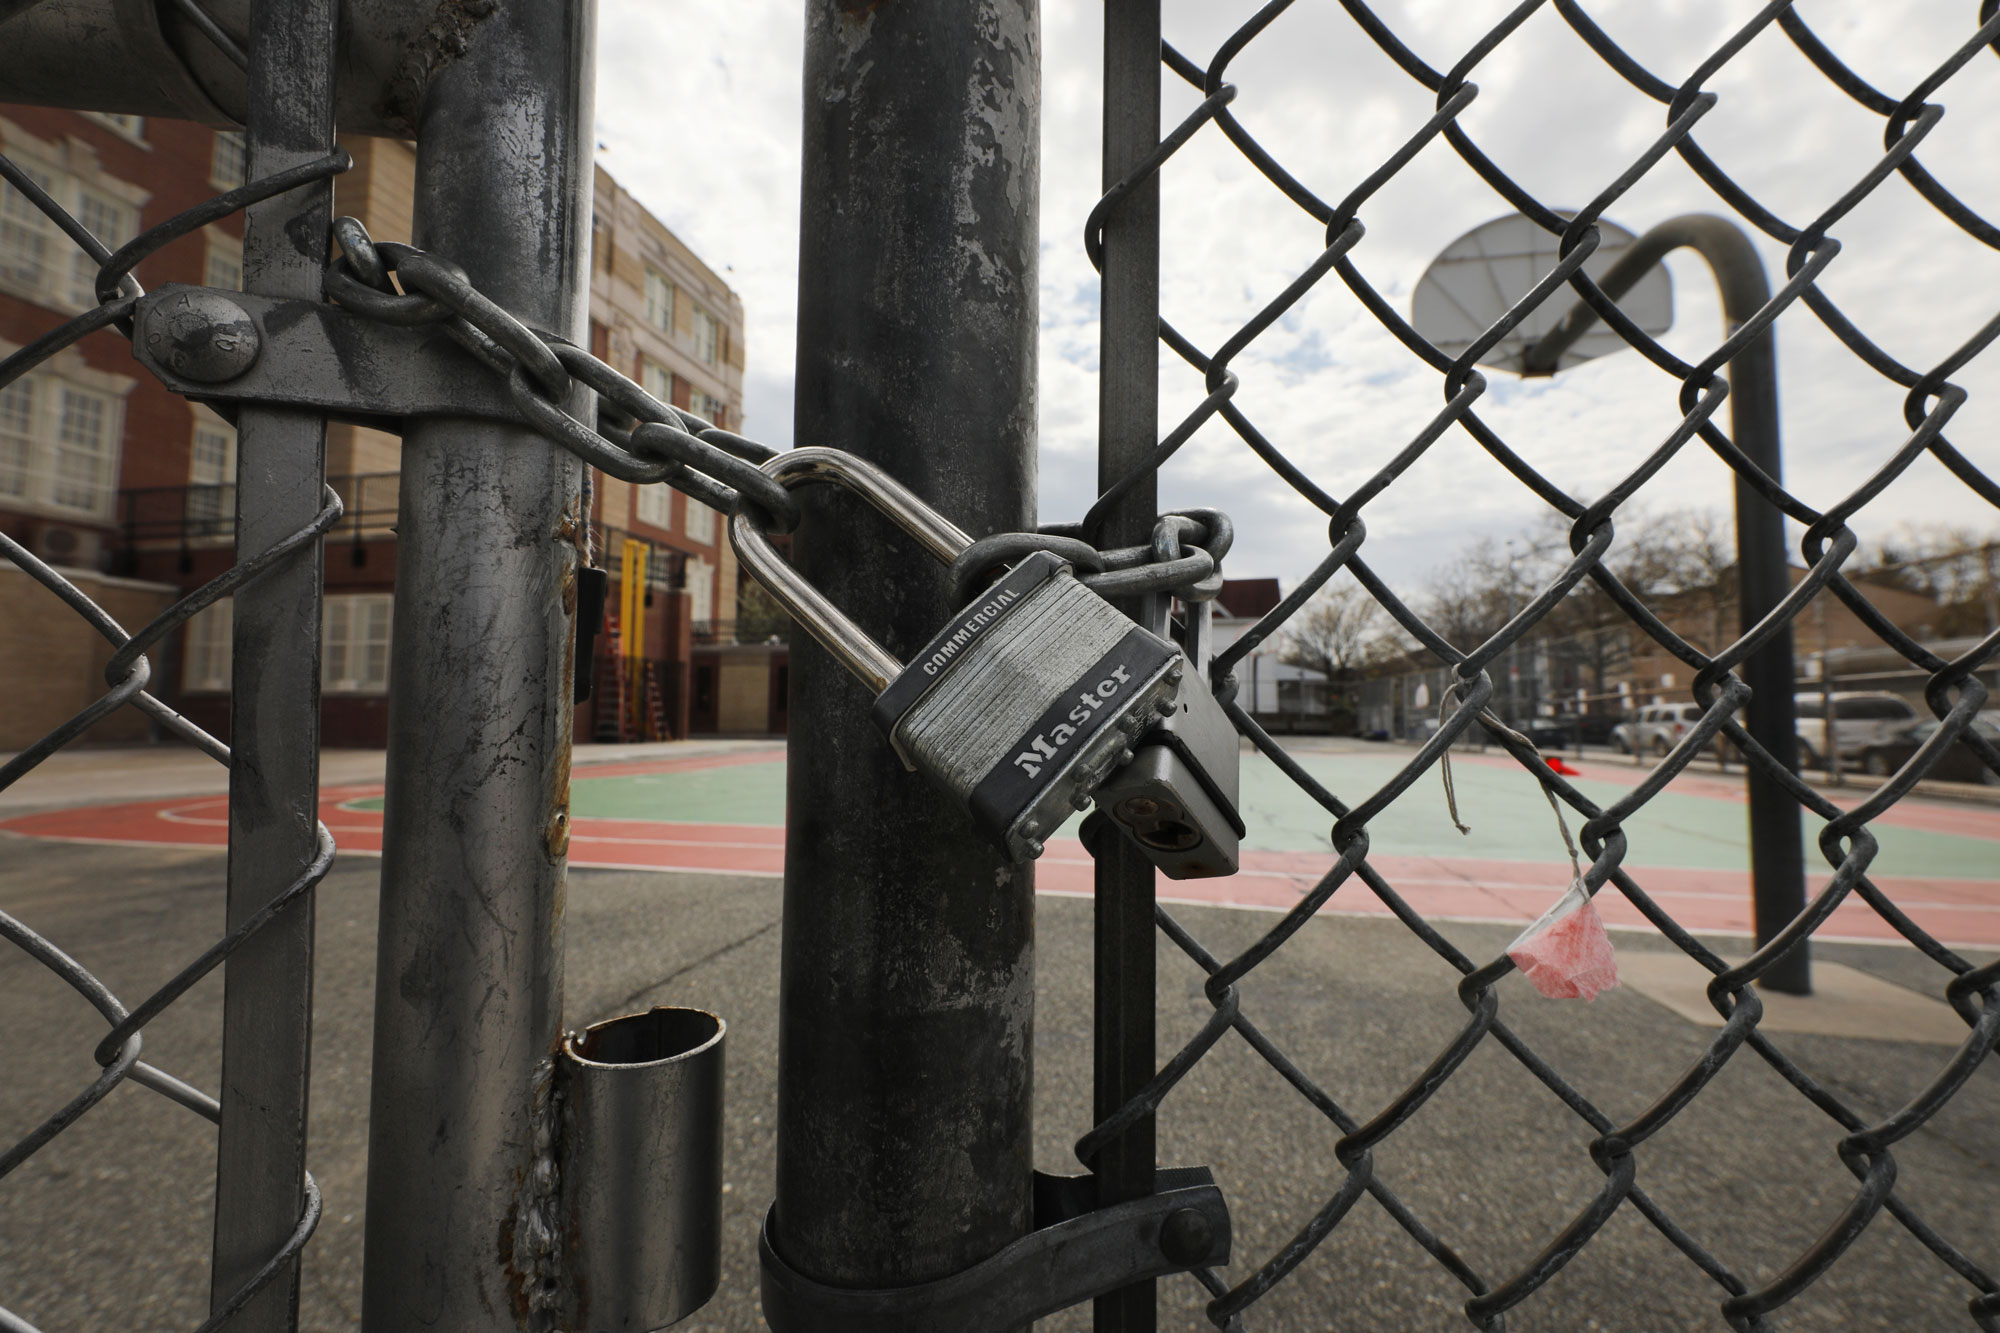 A public school stands closed on April 14, in Brooklyn, New York City.